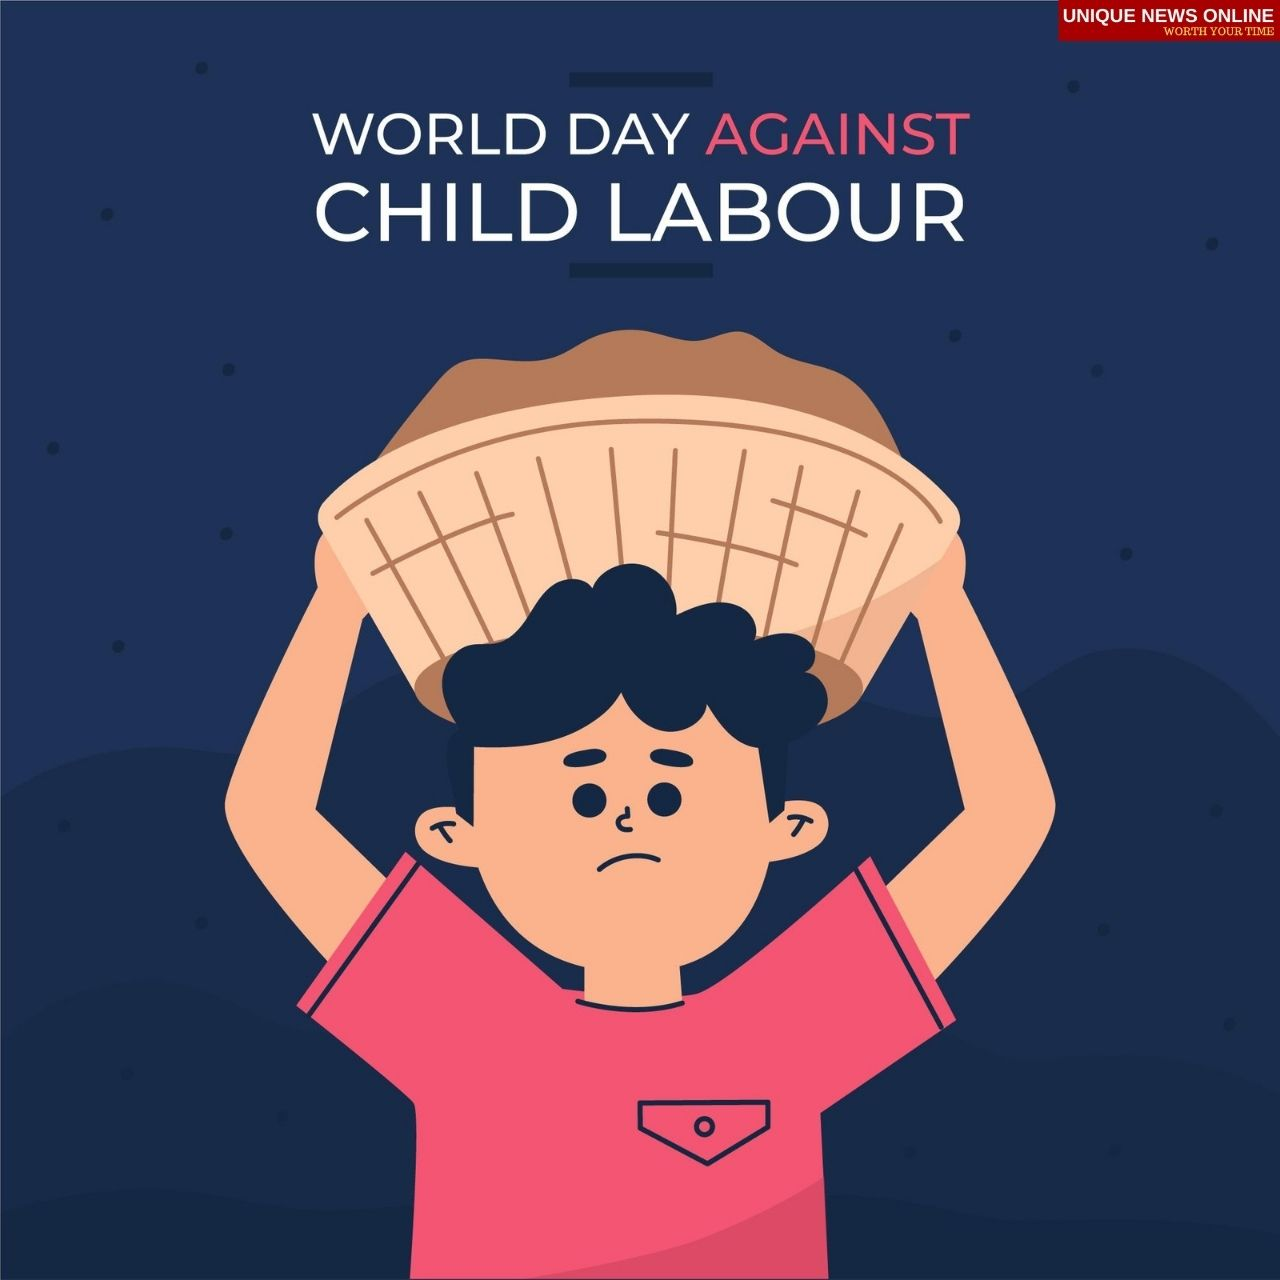 World Day Against Child Labour 2021 Date, Significance and Celebrations: Here's Why It Is Important to Observe the Day and End Violence Against Children